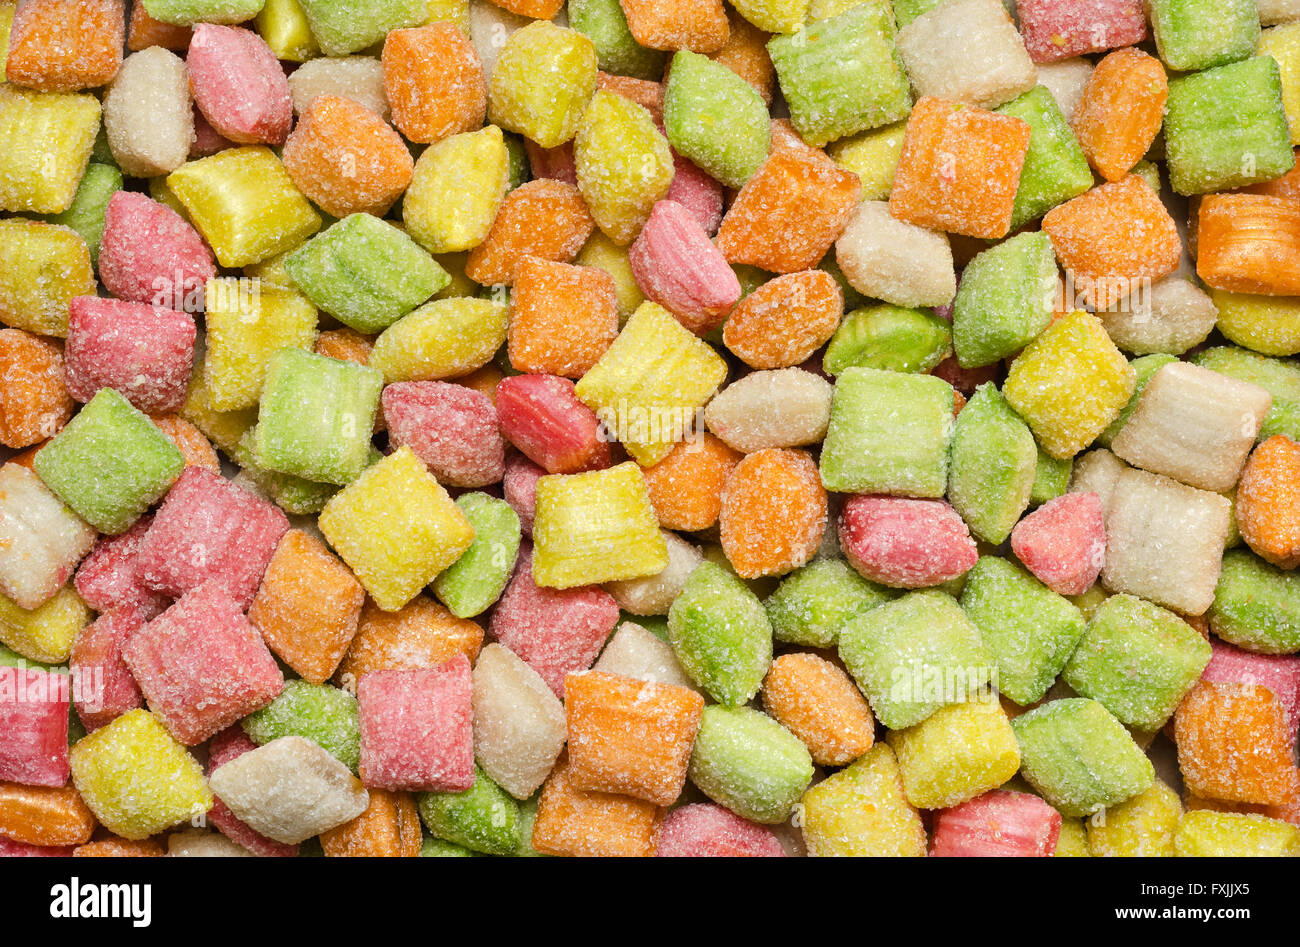 Fruity candy without wrappers - Stock Image